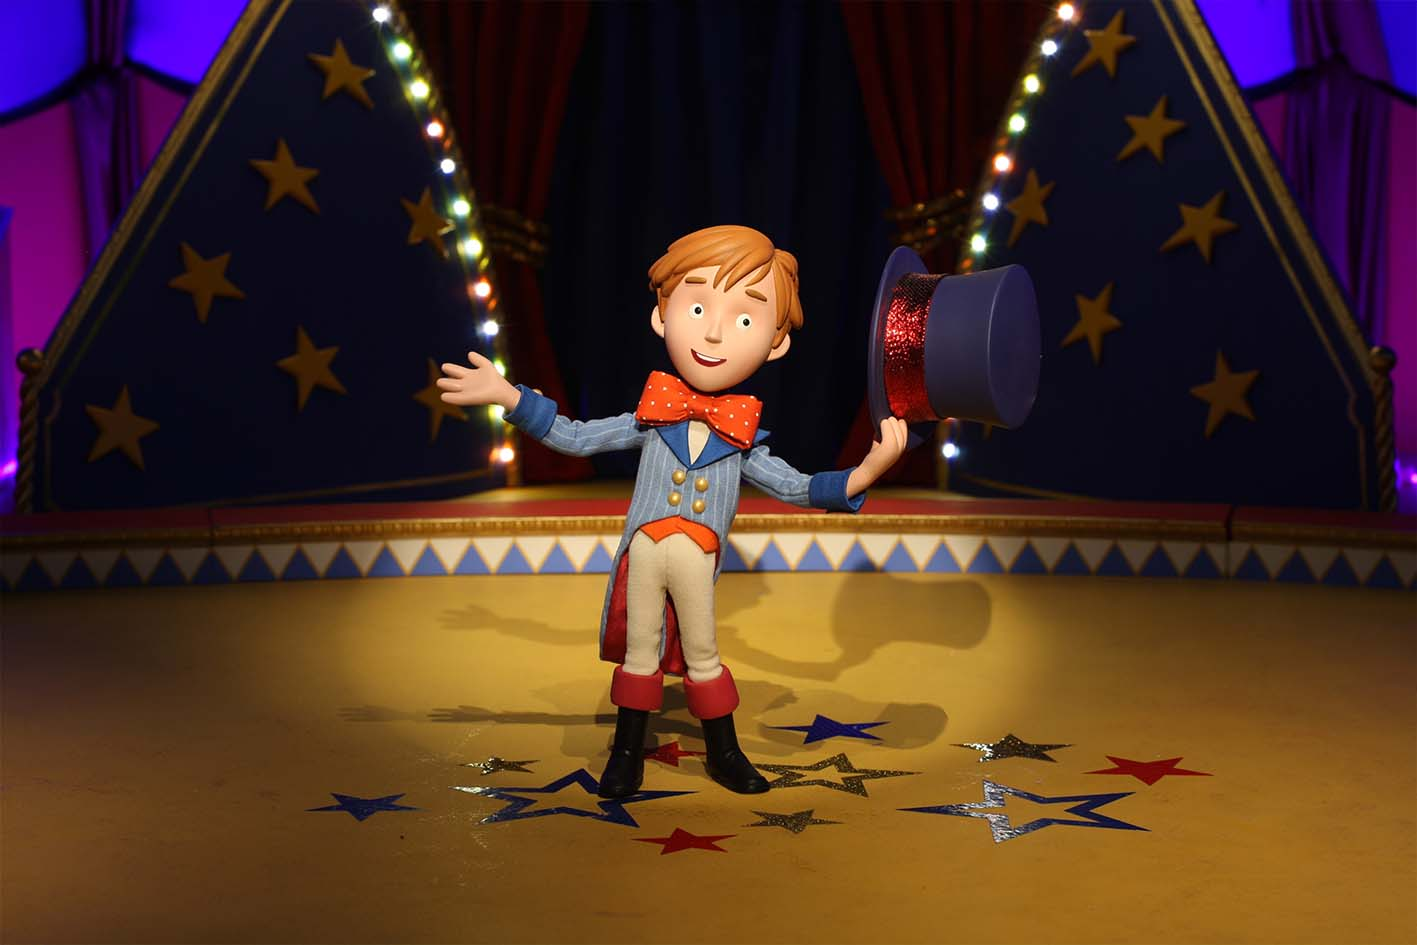 Toby (Toby's Traveling Circus)